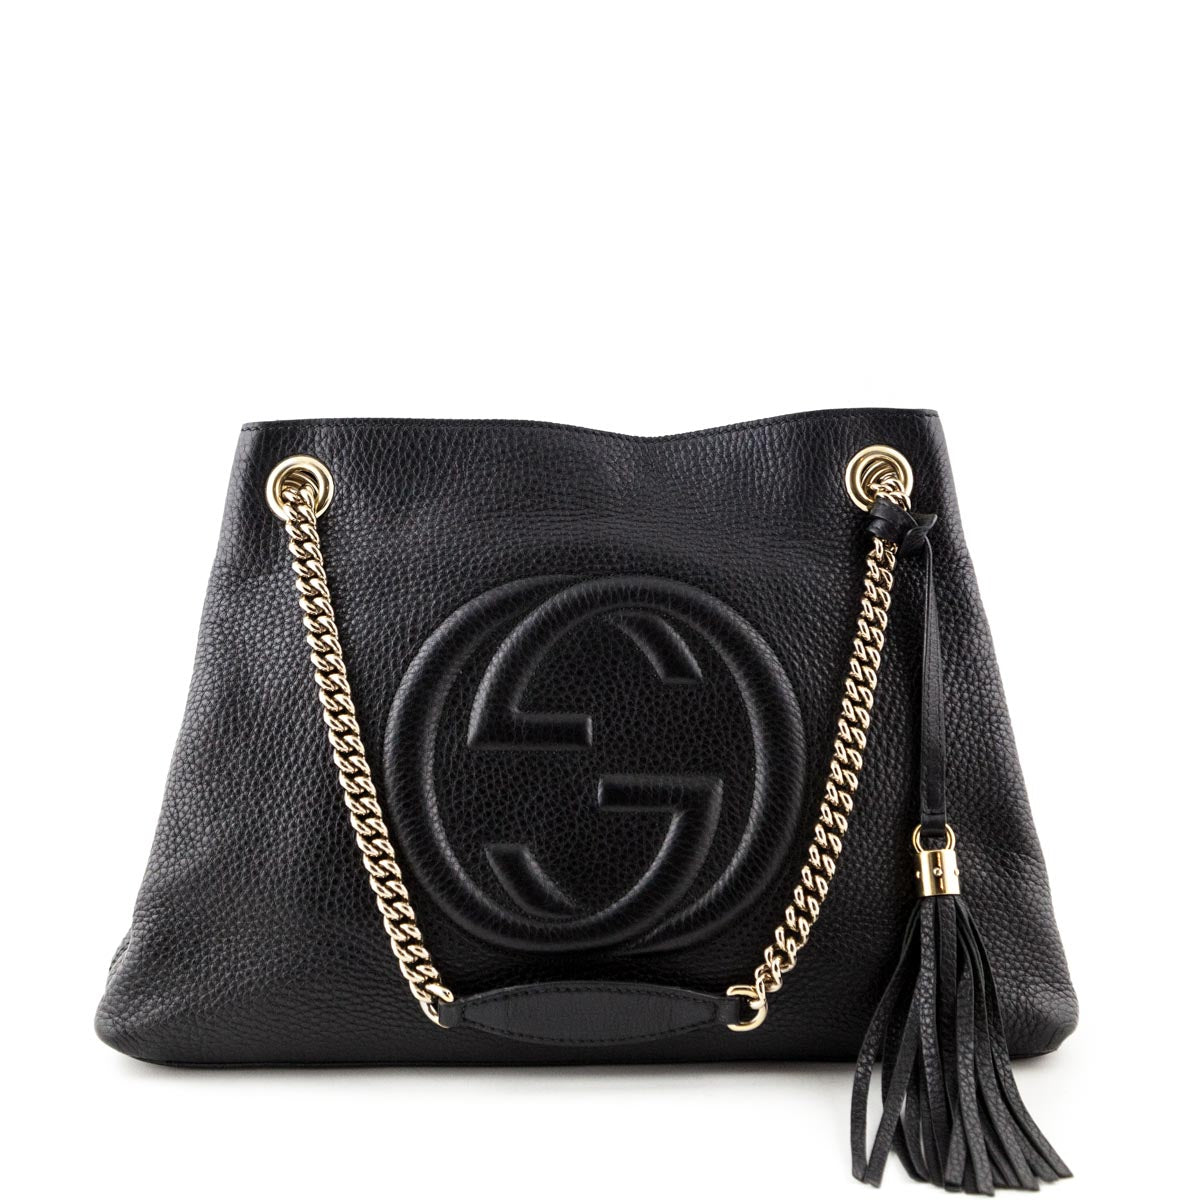 9d0ebf0d7589 Gucci Black Medium Soho Shoulder bag - LOVE that BAG - Preowned Authentic Designer  Handbags ...